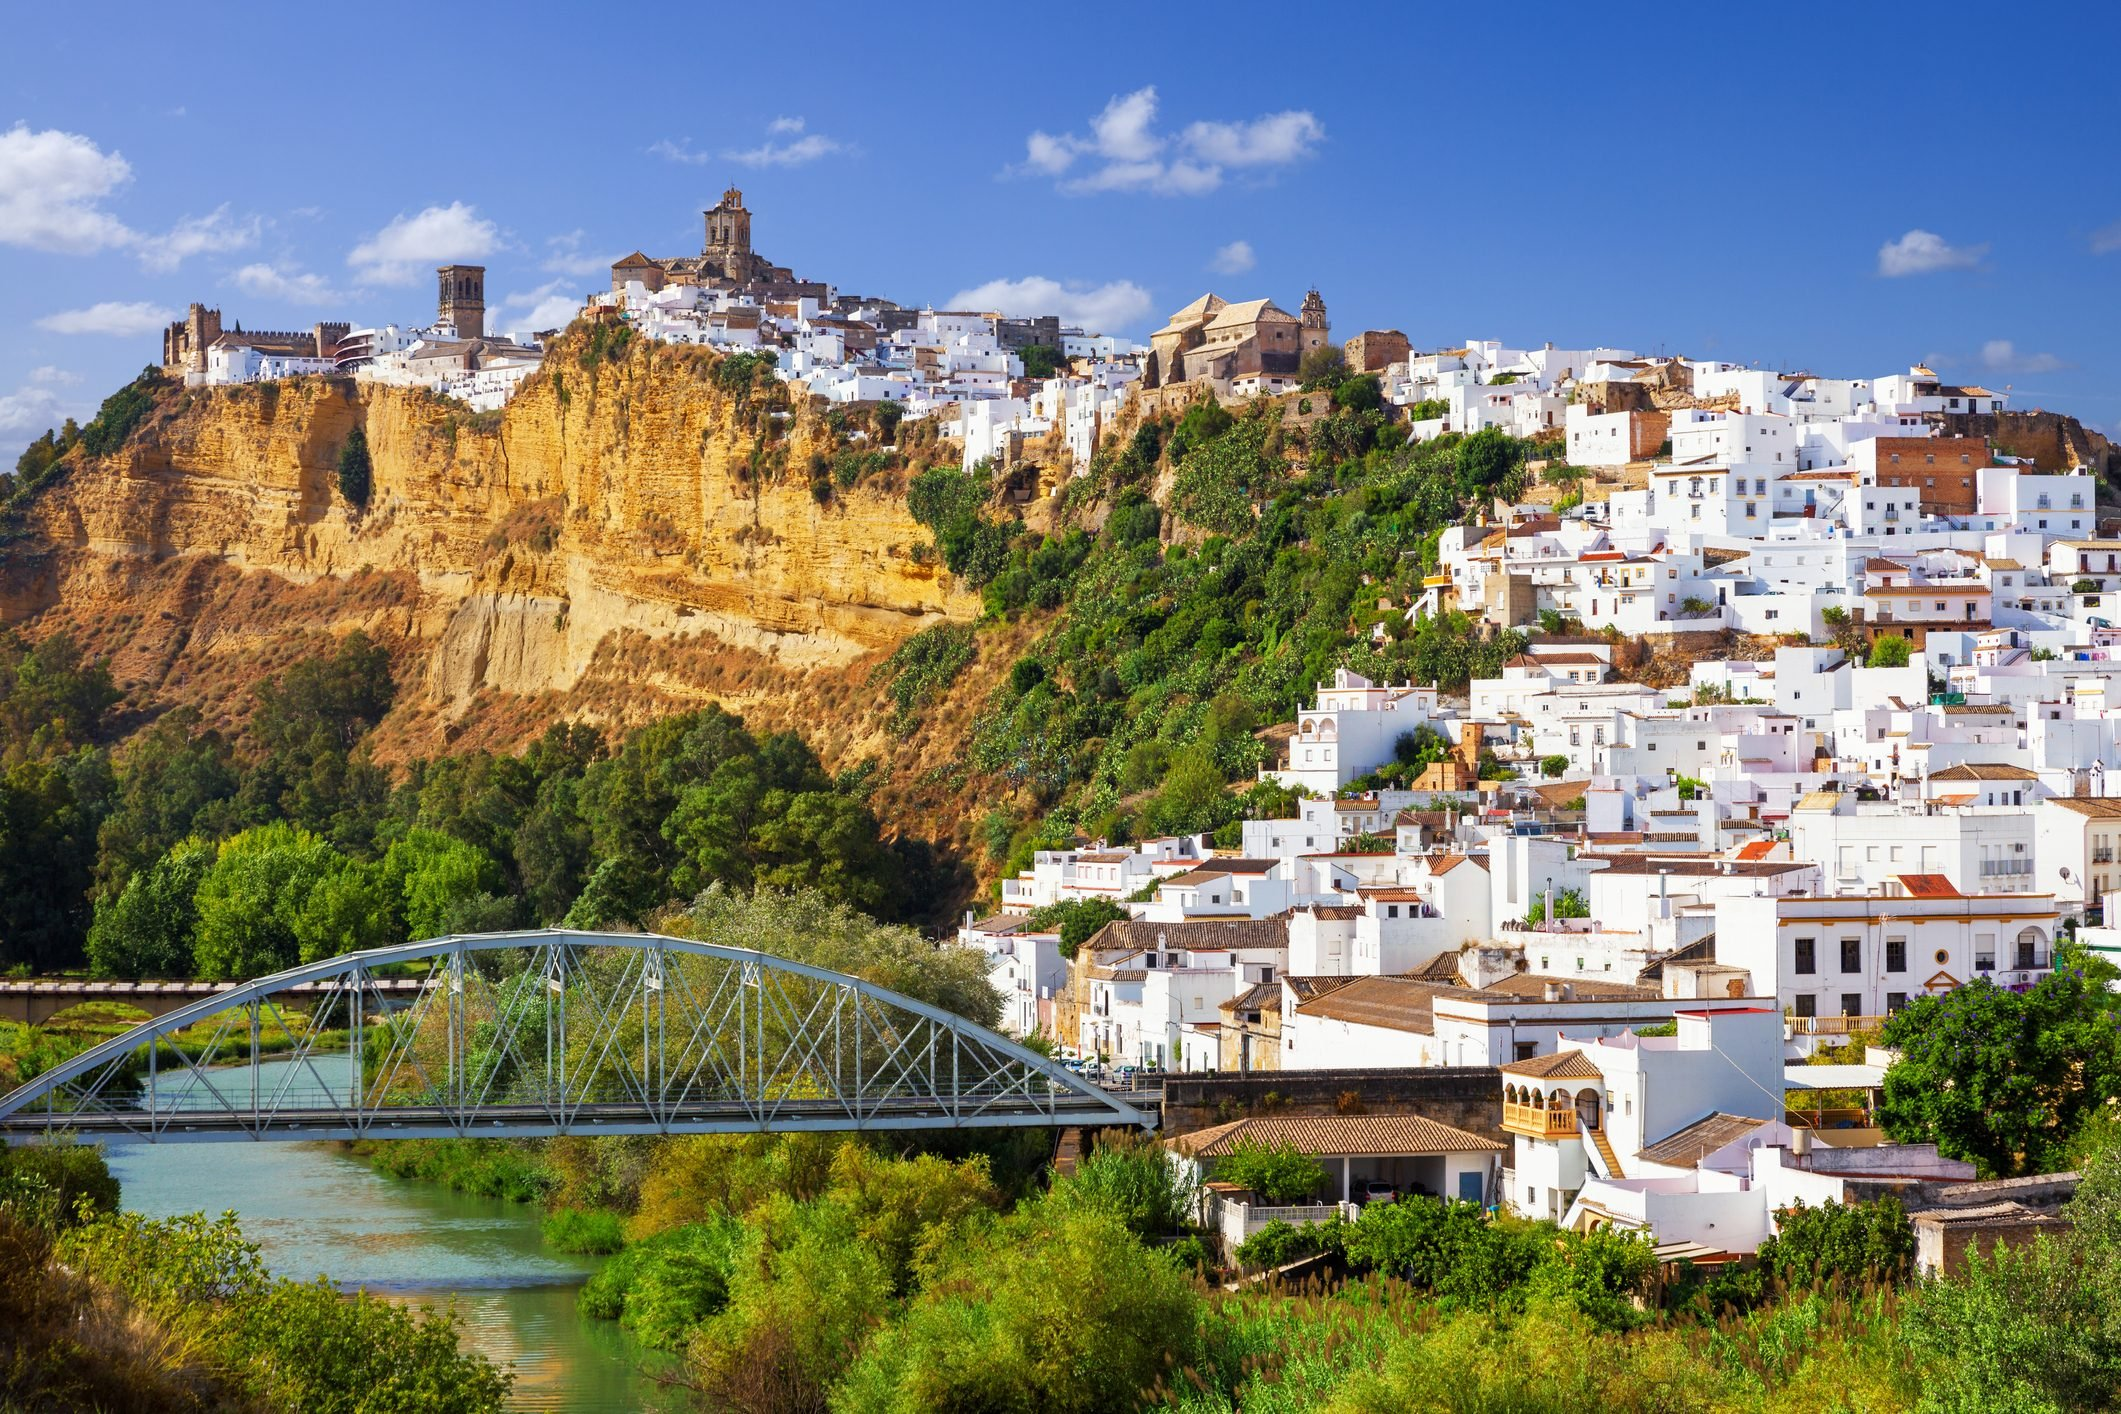 Panoramic of Arcos de la Frontera, Spain